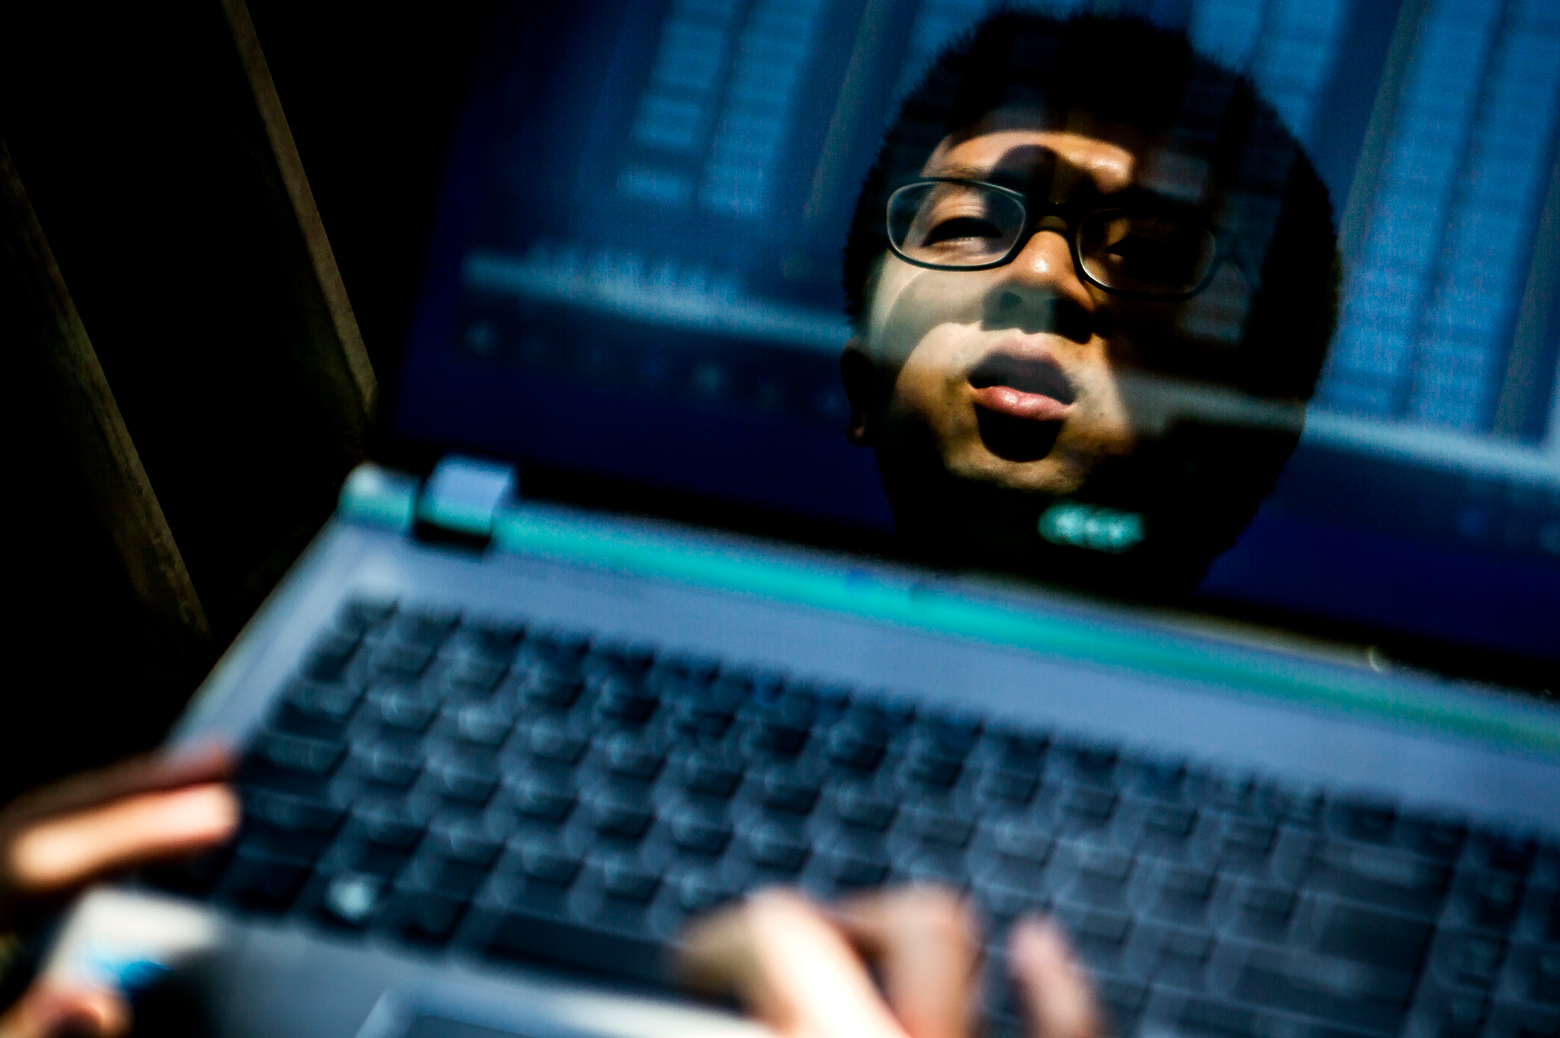 Qi Luo's face is reflected in the screen of a laptop